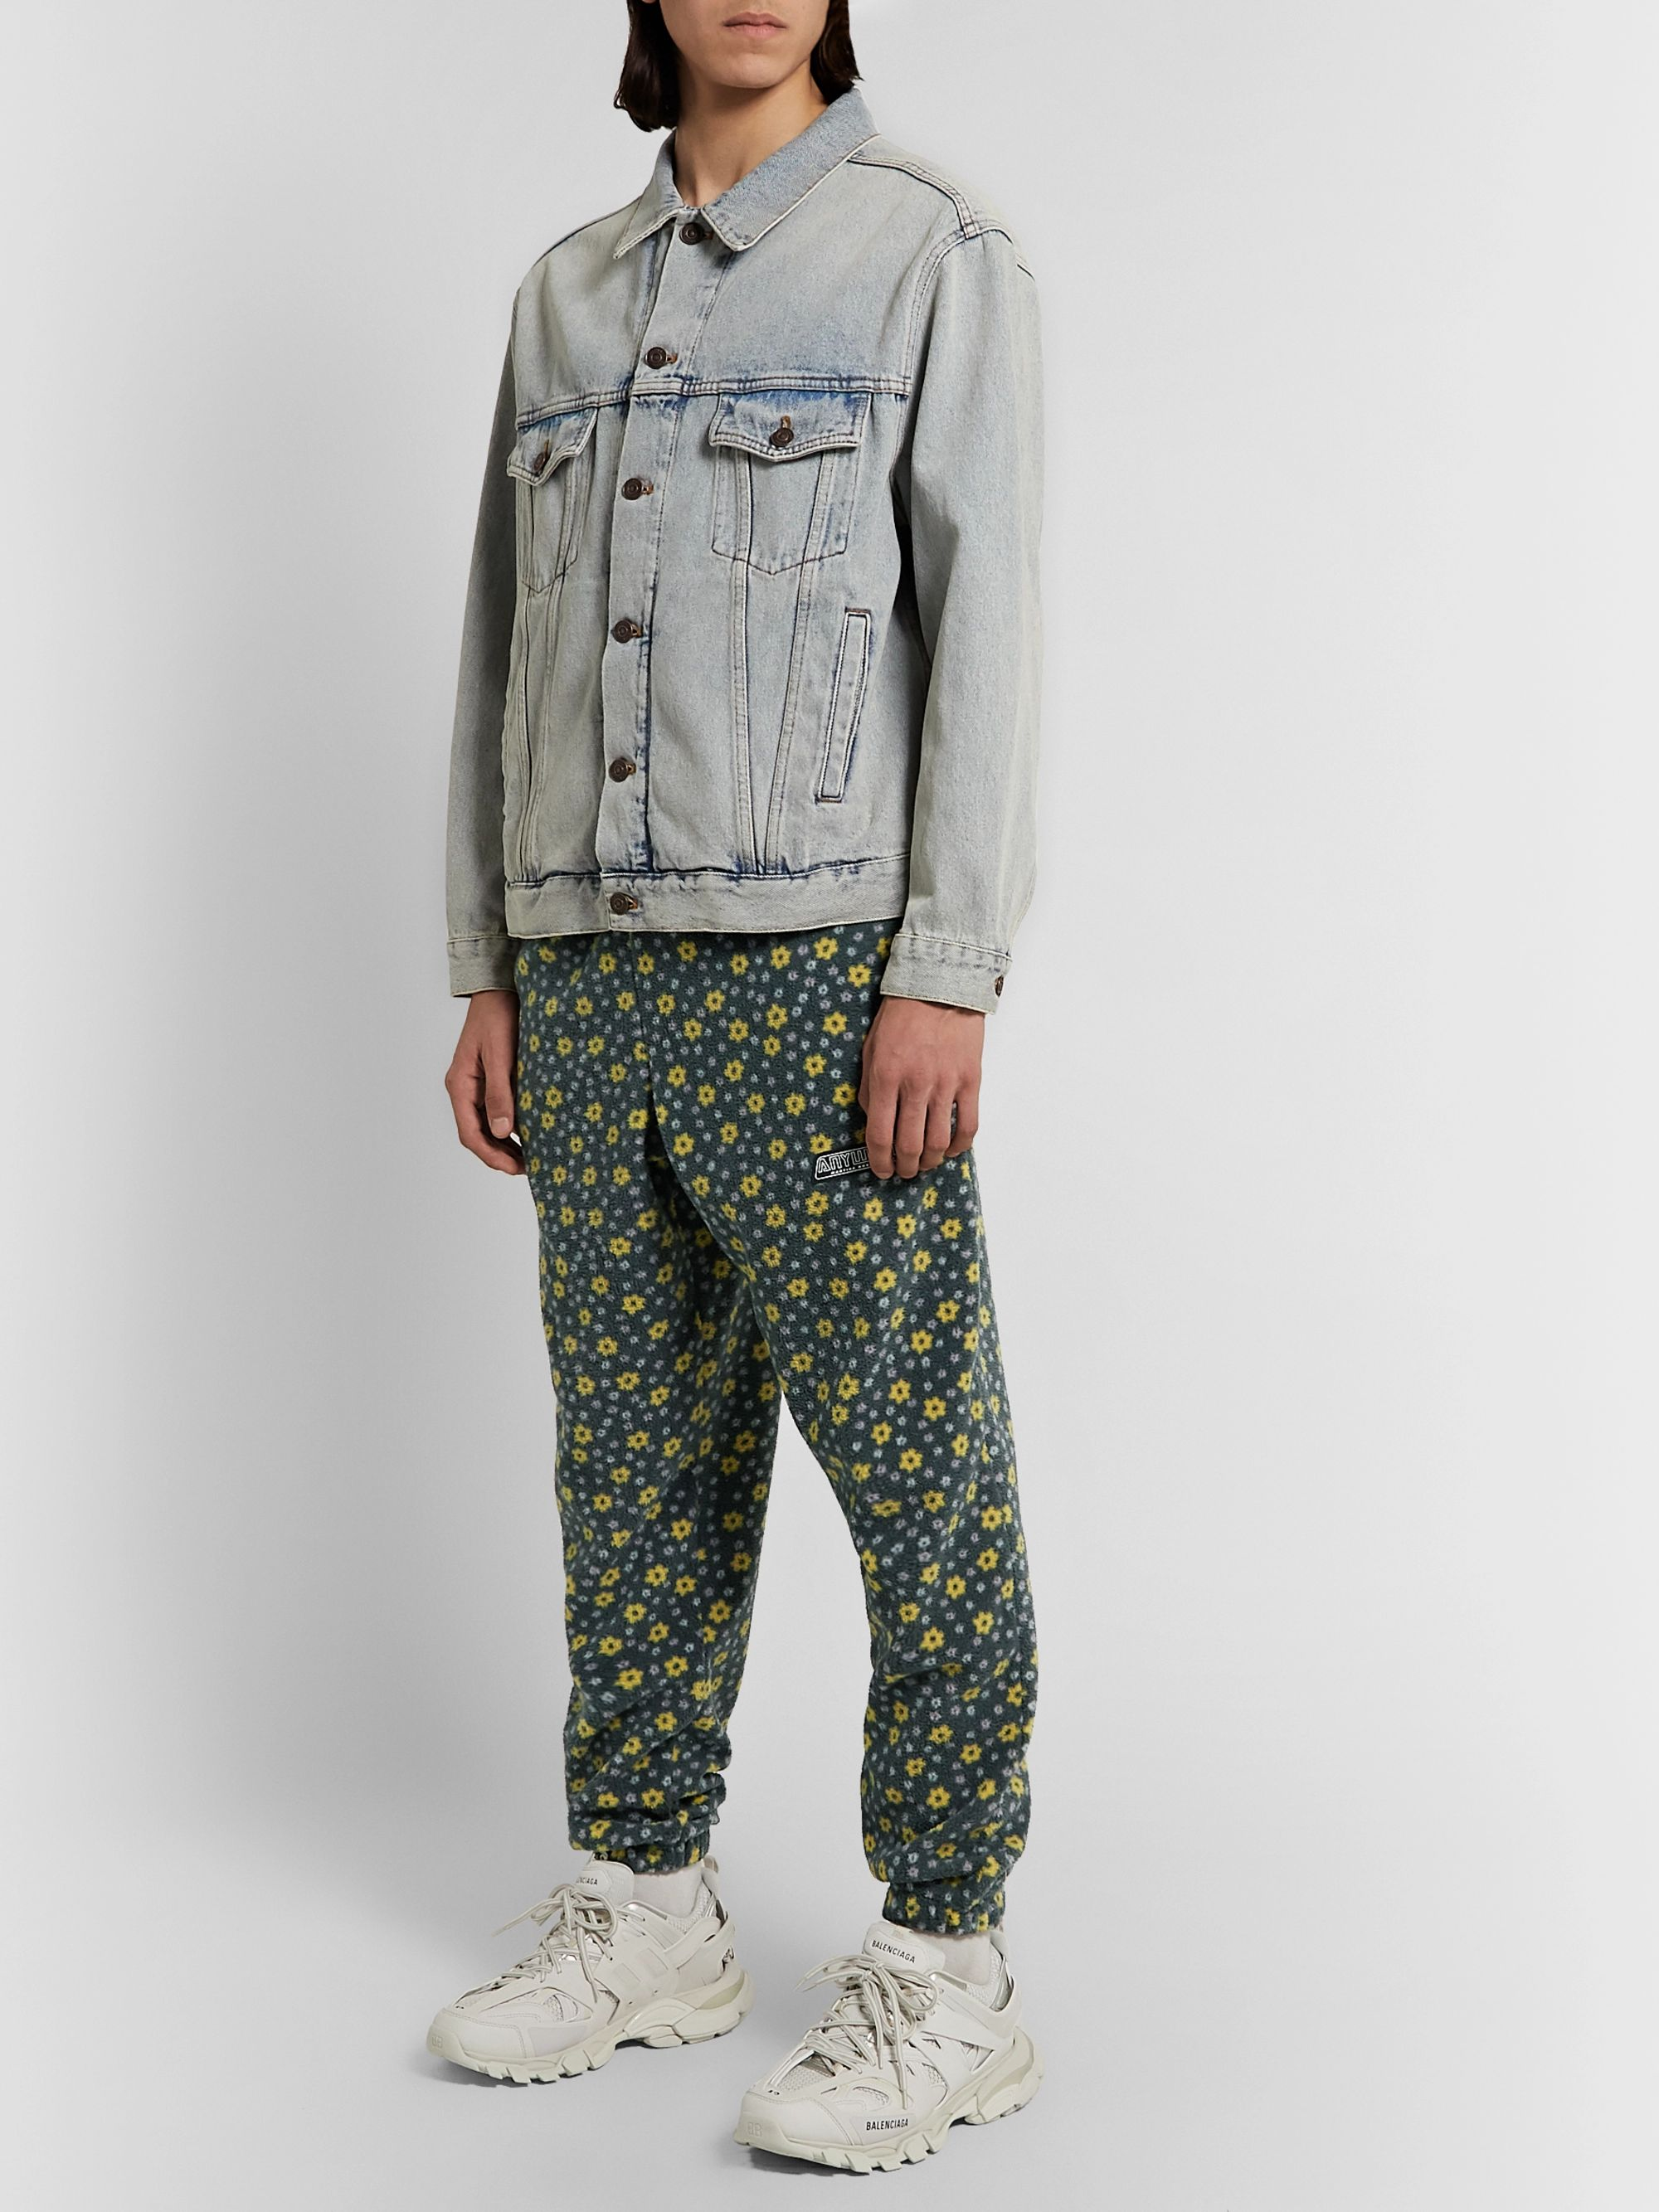 Martine Rose Slim-Fit Tapered Printed Fleece Track Pants